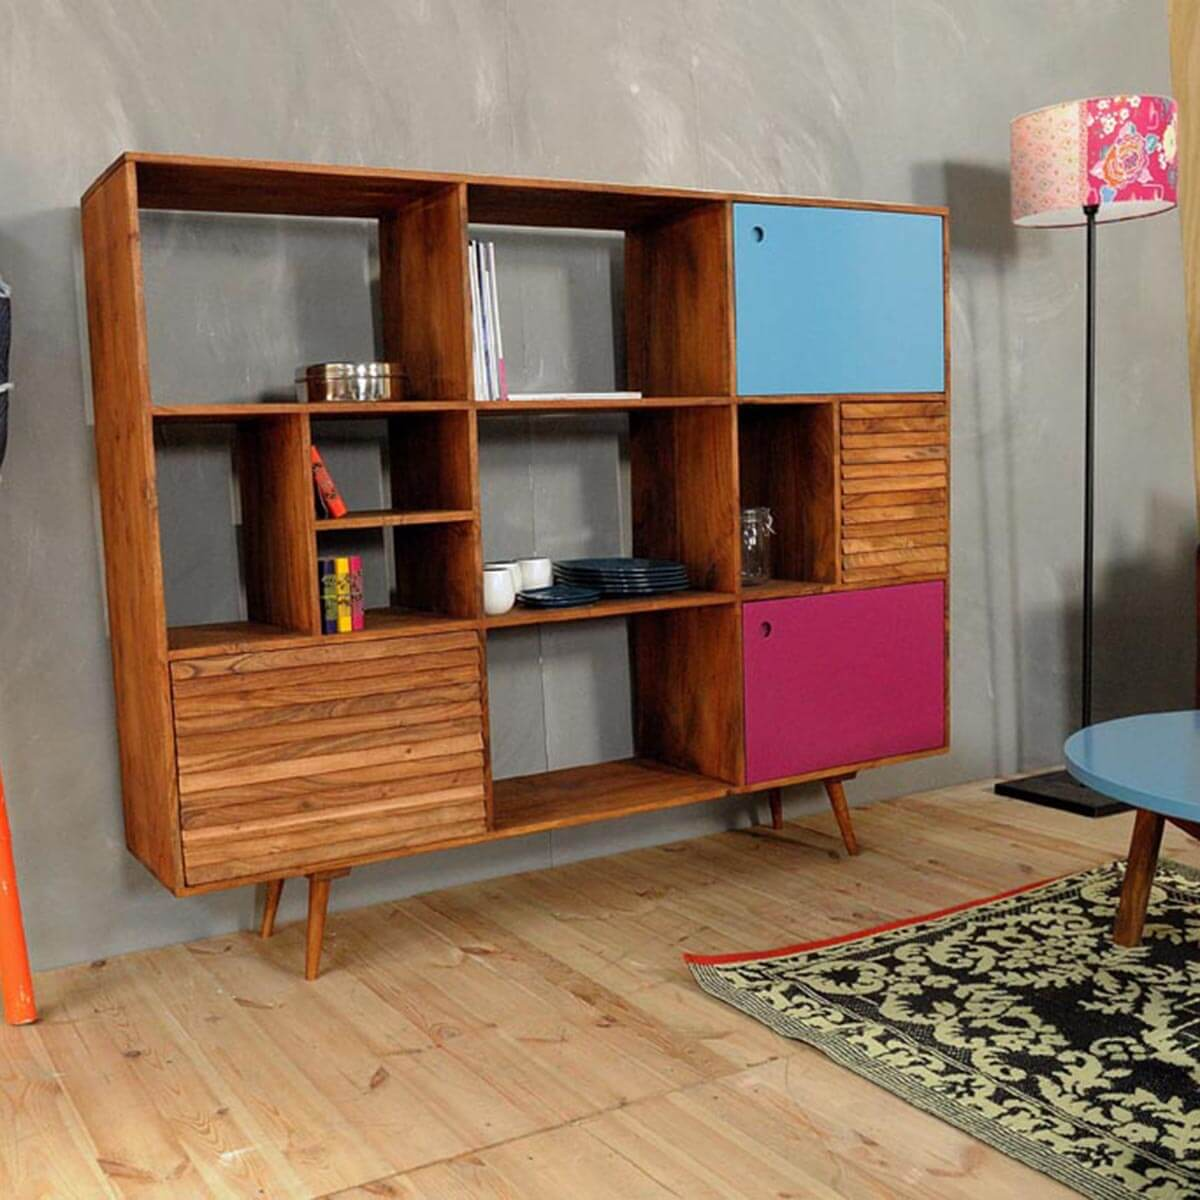 meuble oslo rose baobab pas cher grandes marques en promo sur zeeloft. Black Bedroom Furniture Sets. Home Design Ideas